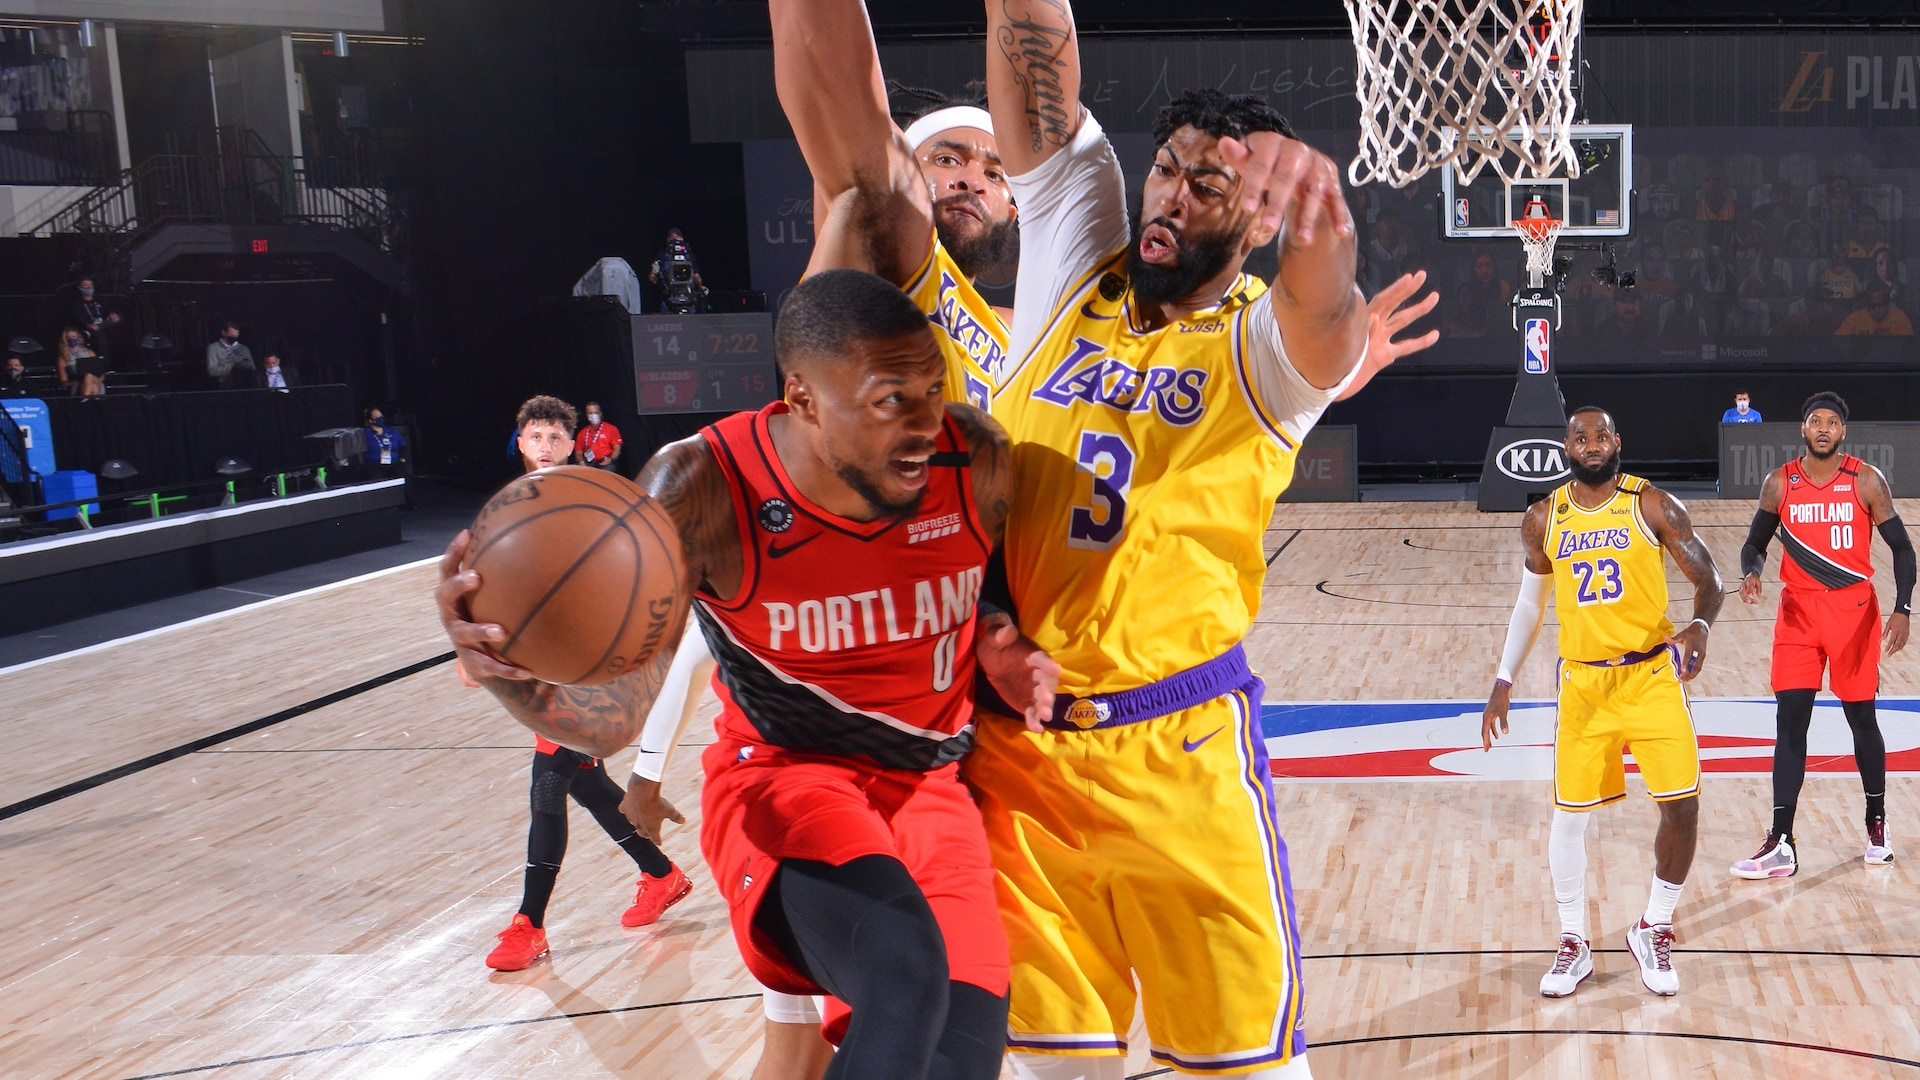 Lakers ramp up defensive execution in Game 2 win